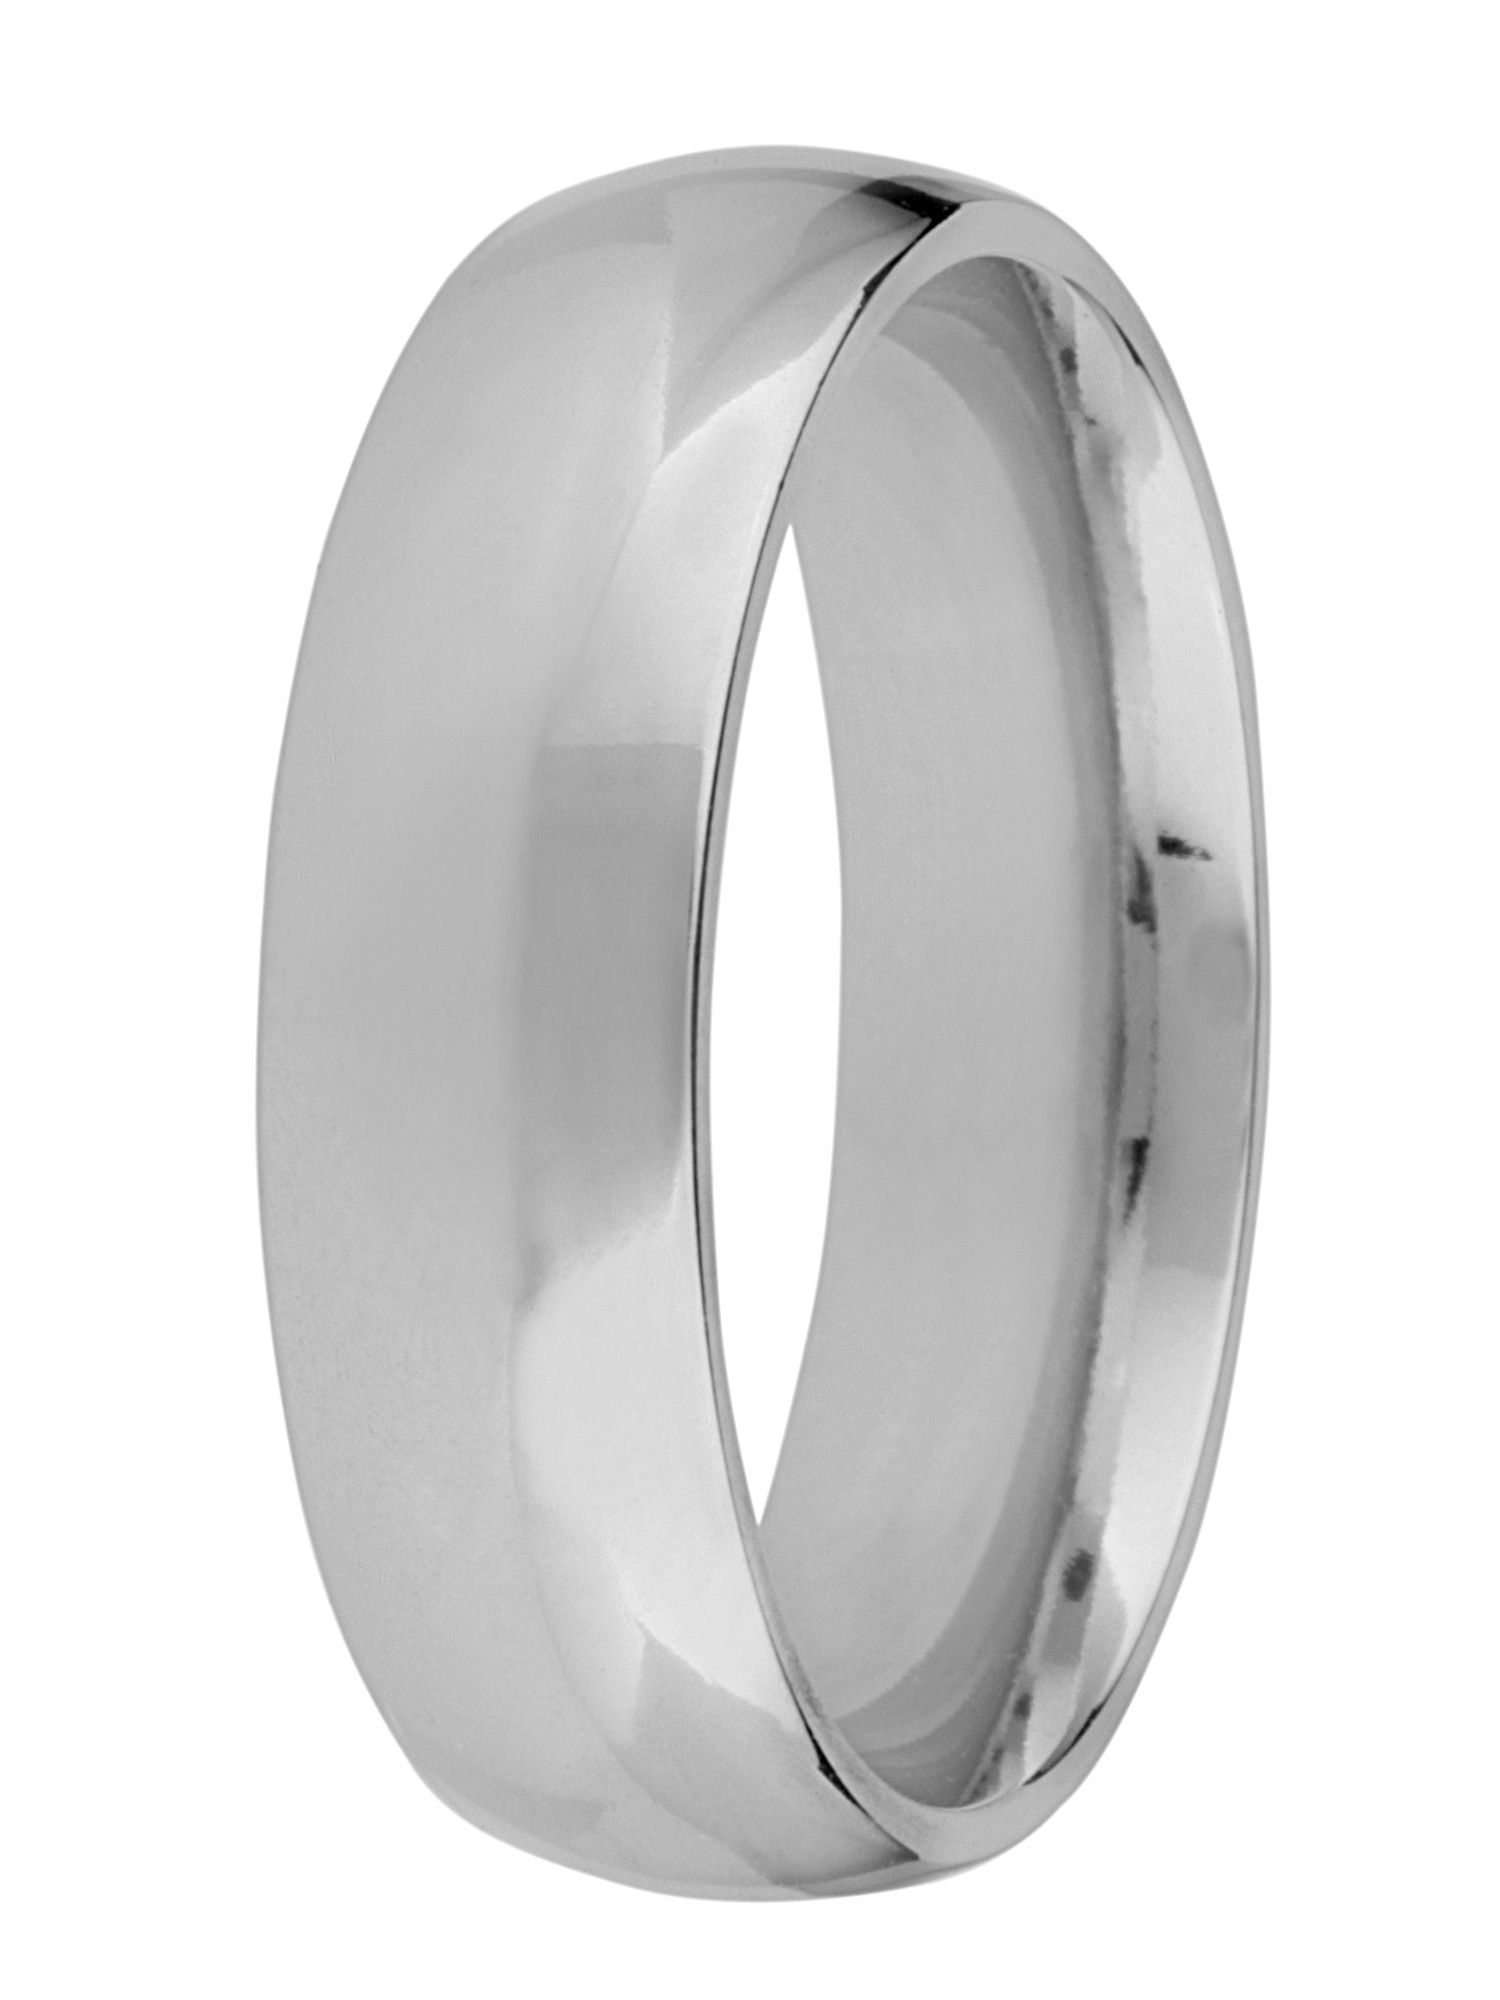 Grooms platinum 6mm court wedding ring - Silver